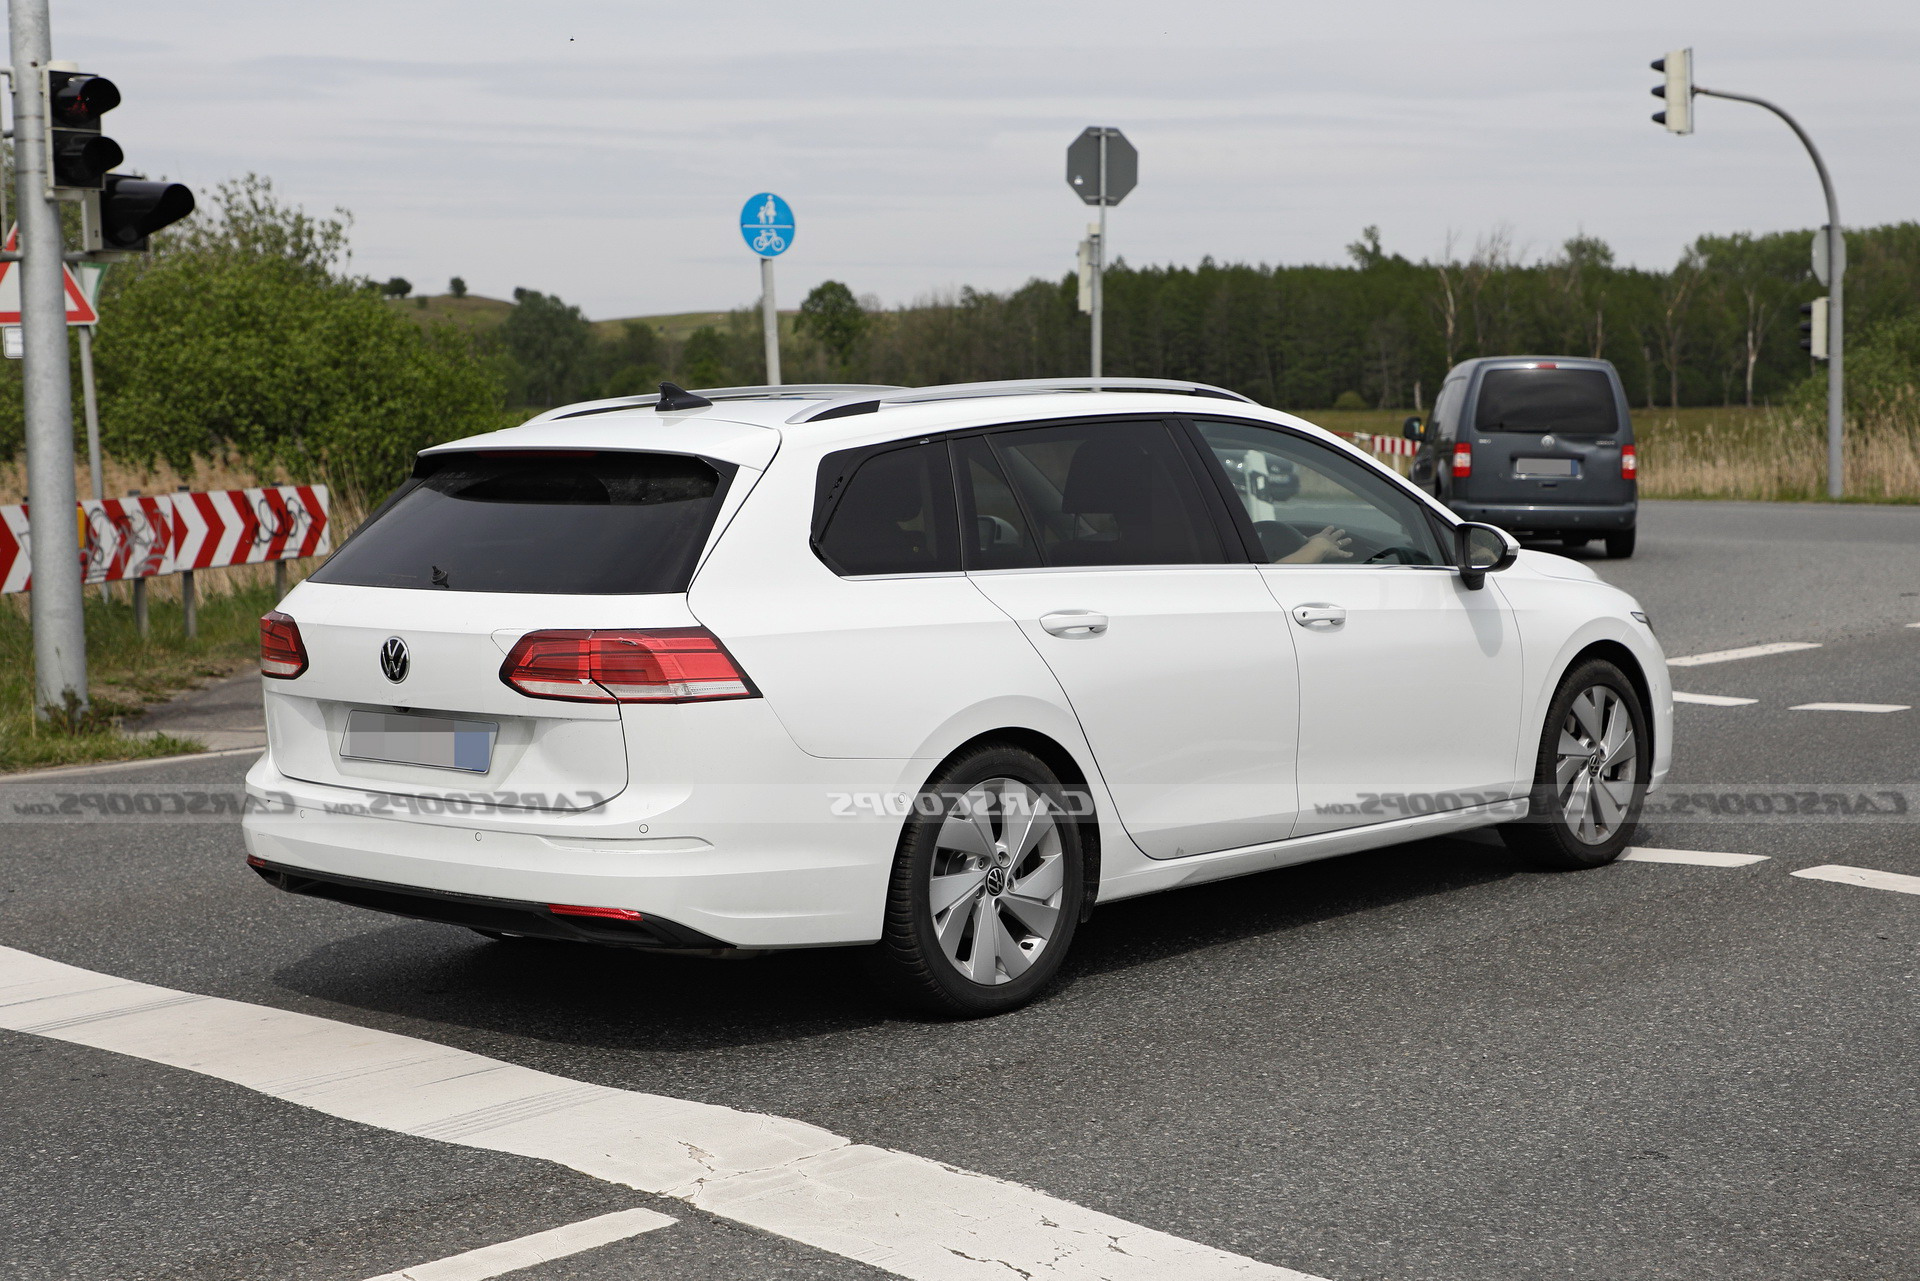 2021 Vw Golf Variant Mk8: New Wagon Isn't Even Trying To